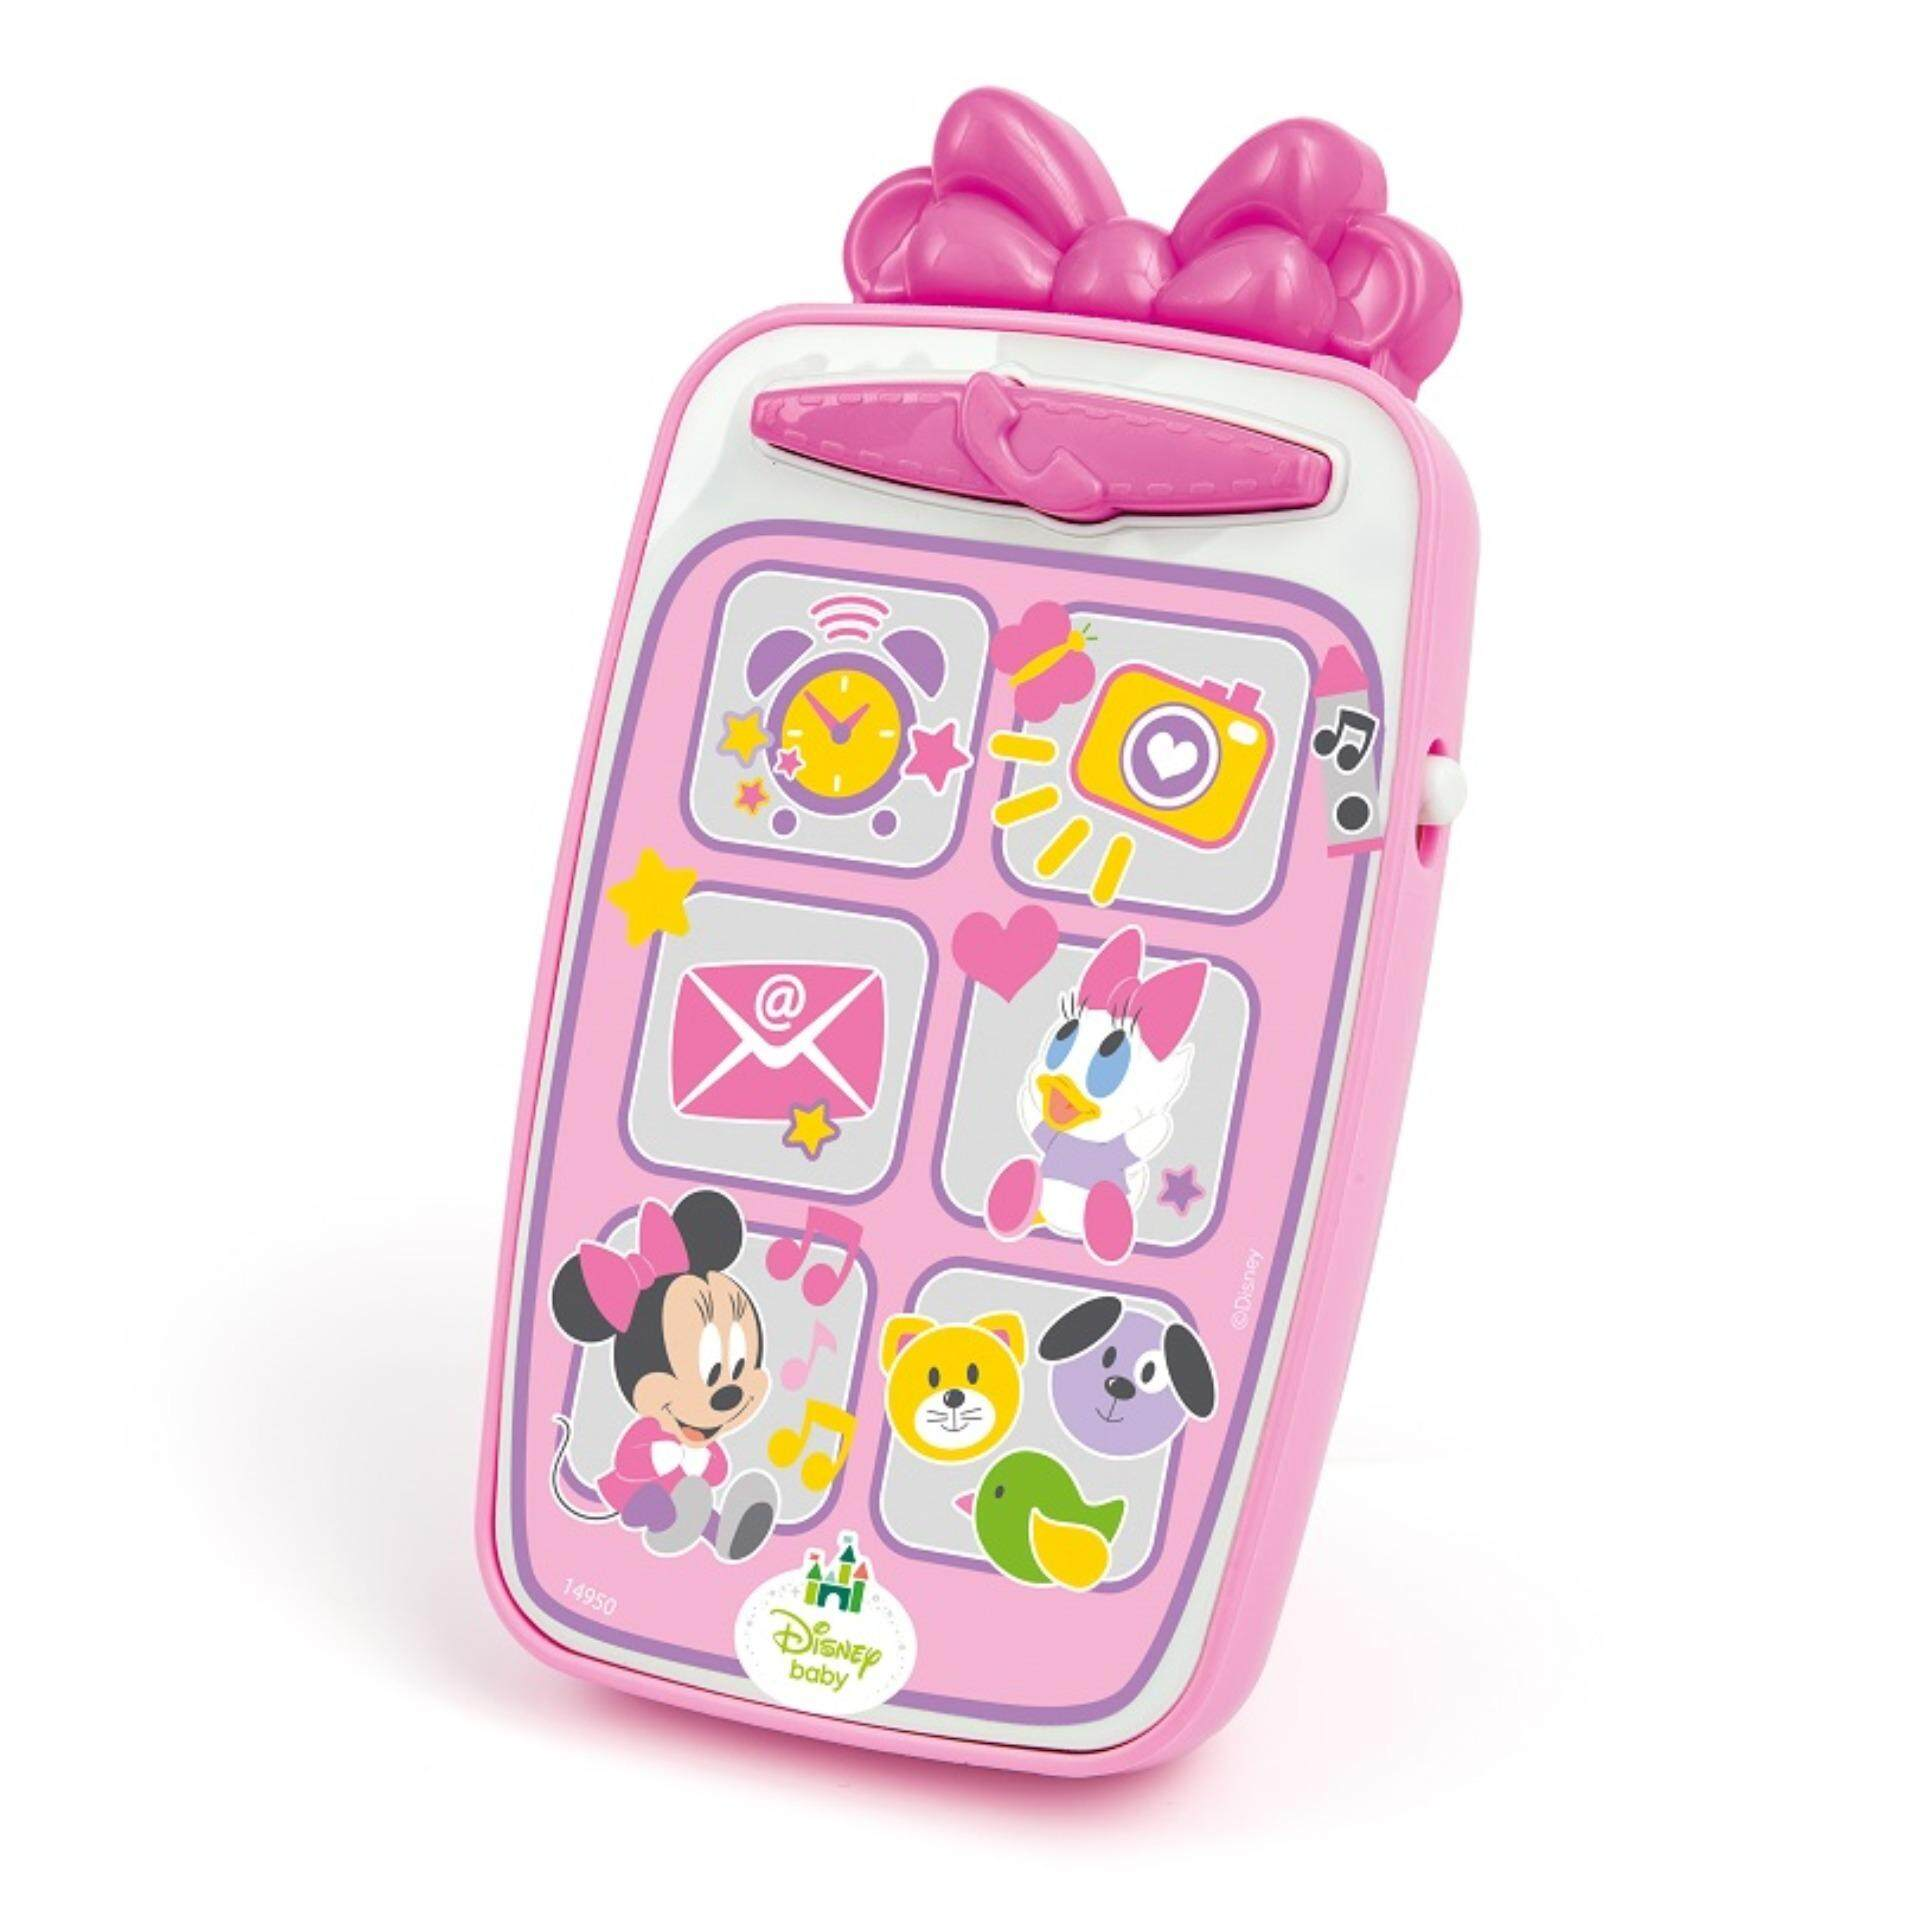 Disney Baby Developmental Musical Smartphone Toys - Minnie toys education